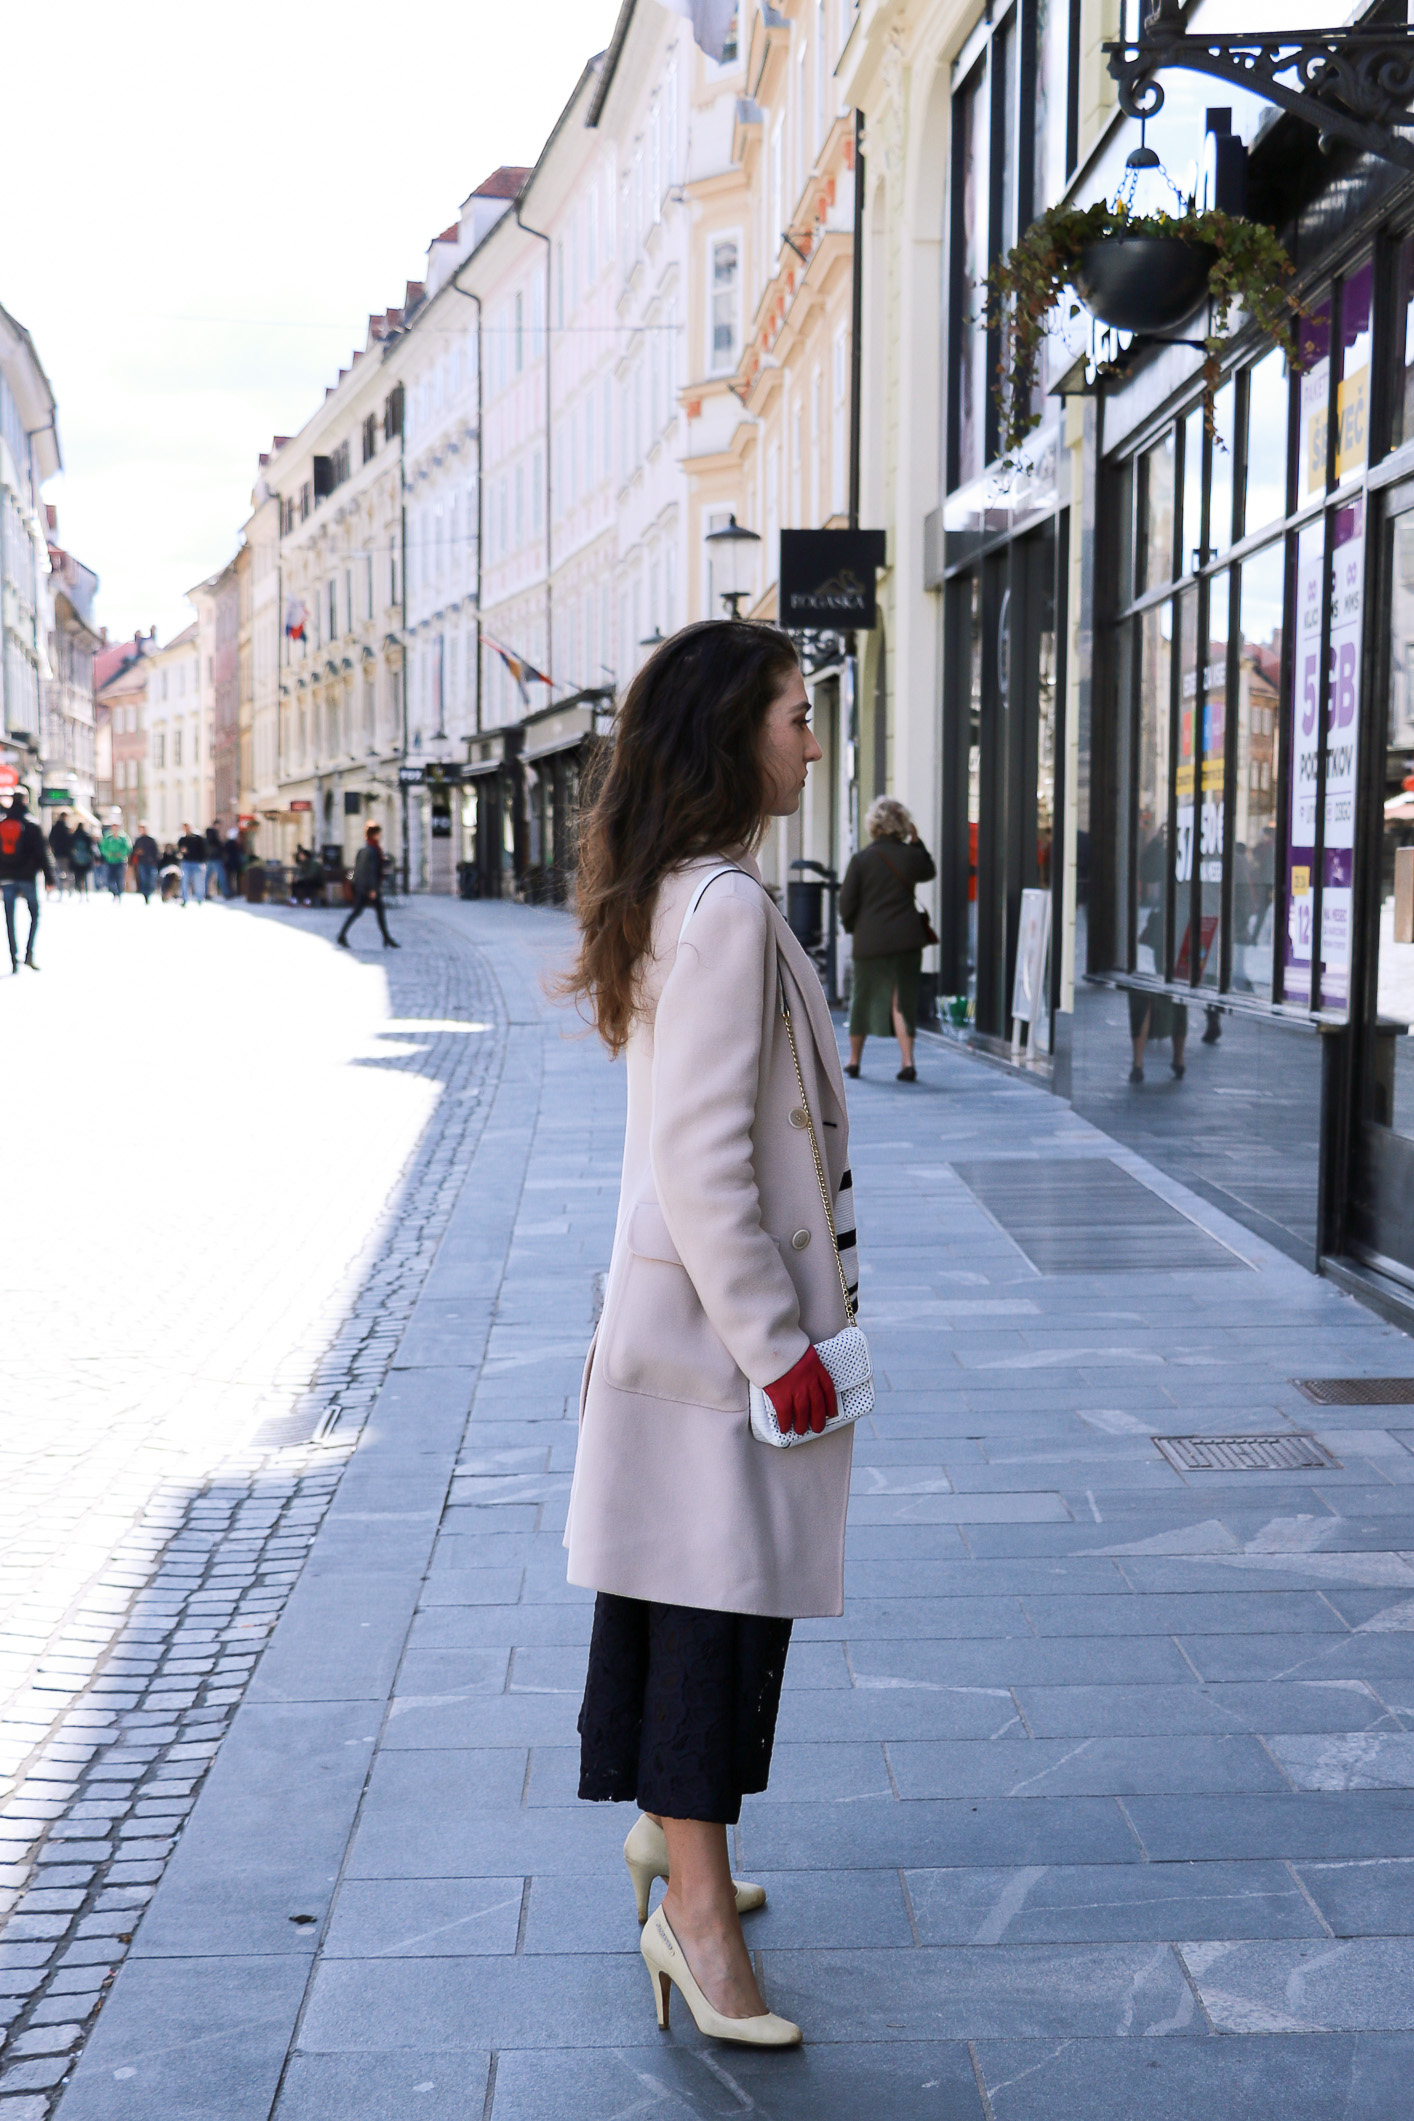 Fashion blogger Veronika Lipar of Brunette From Wall Street on how to wear stripes and lace